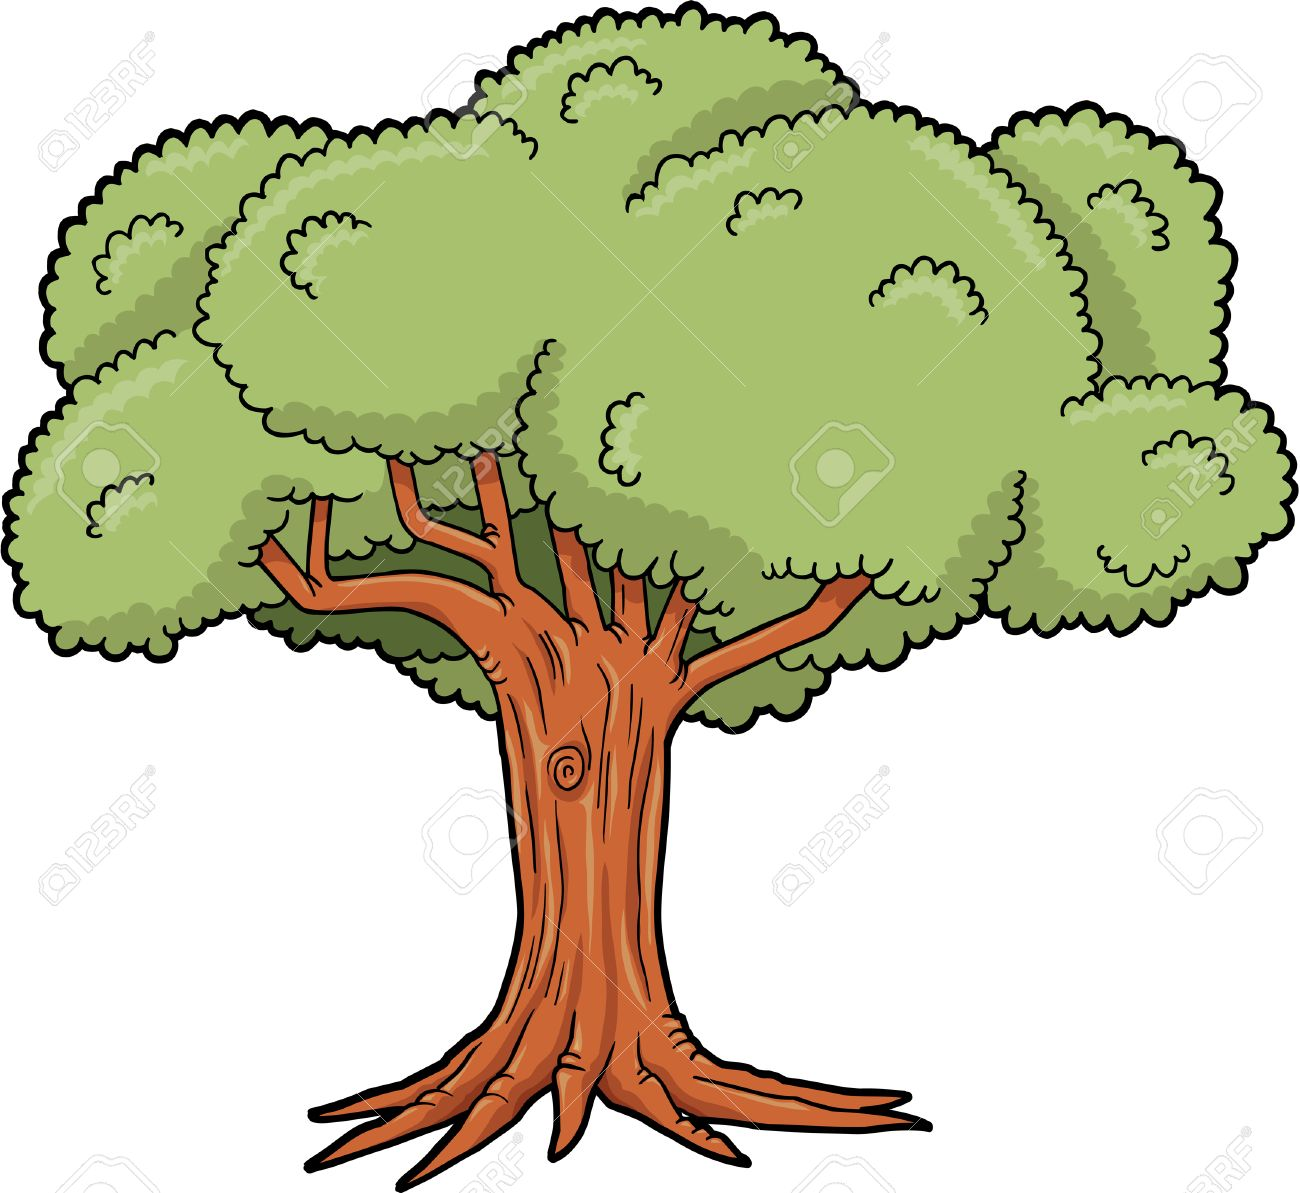 Big tree clipart 5 » Clipart Station.